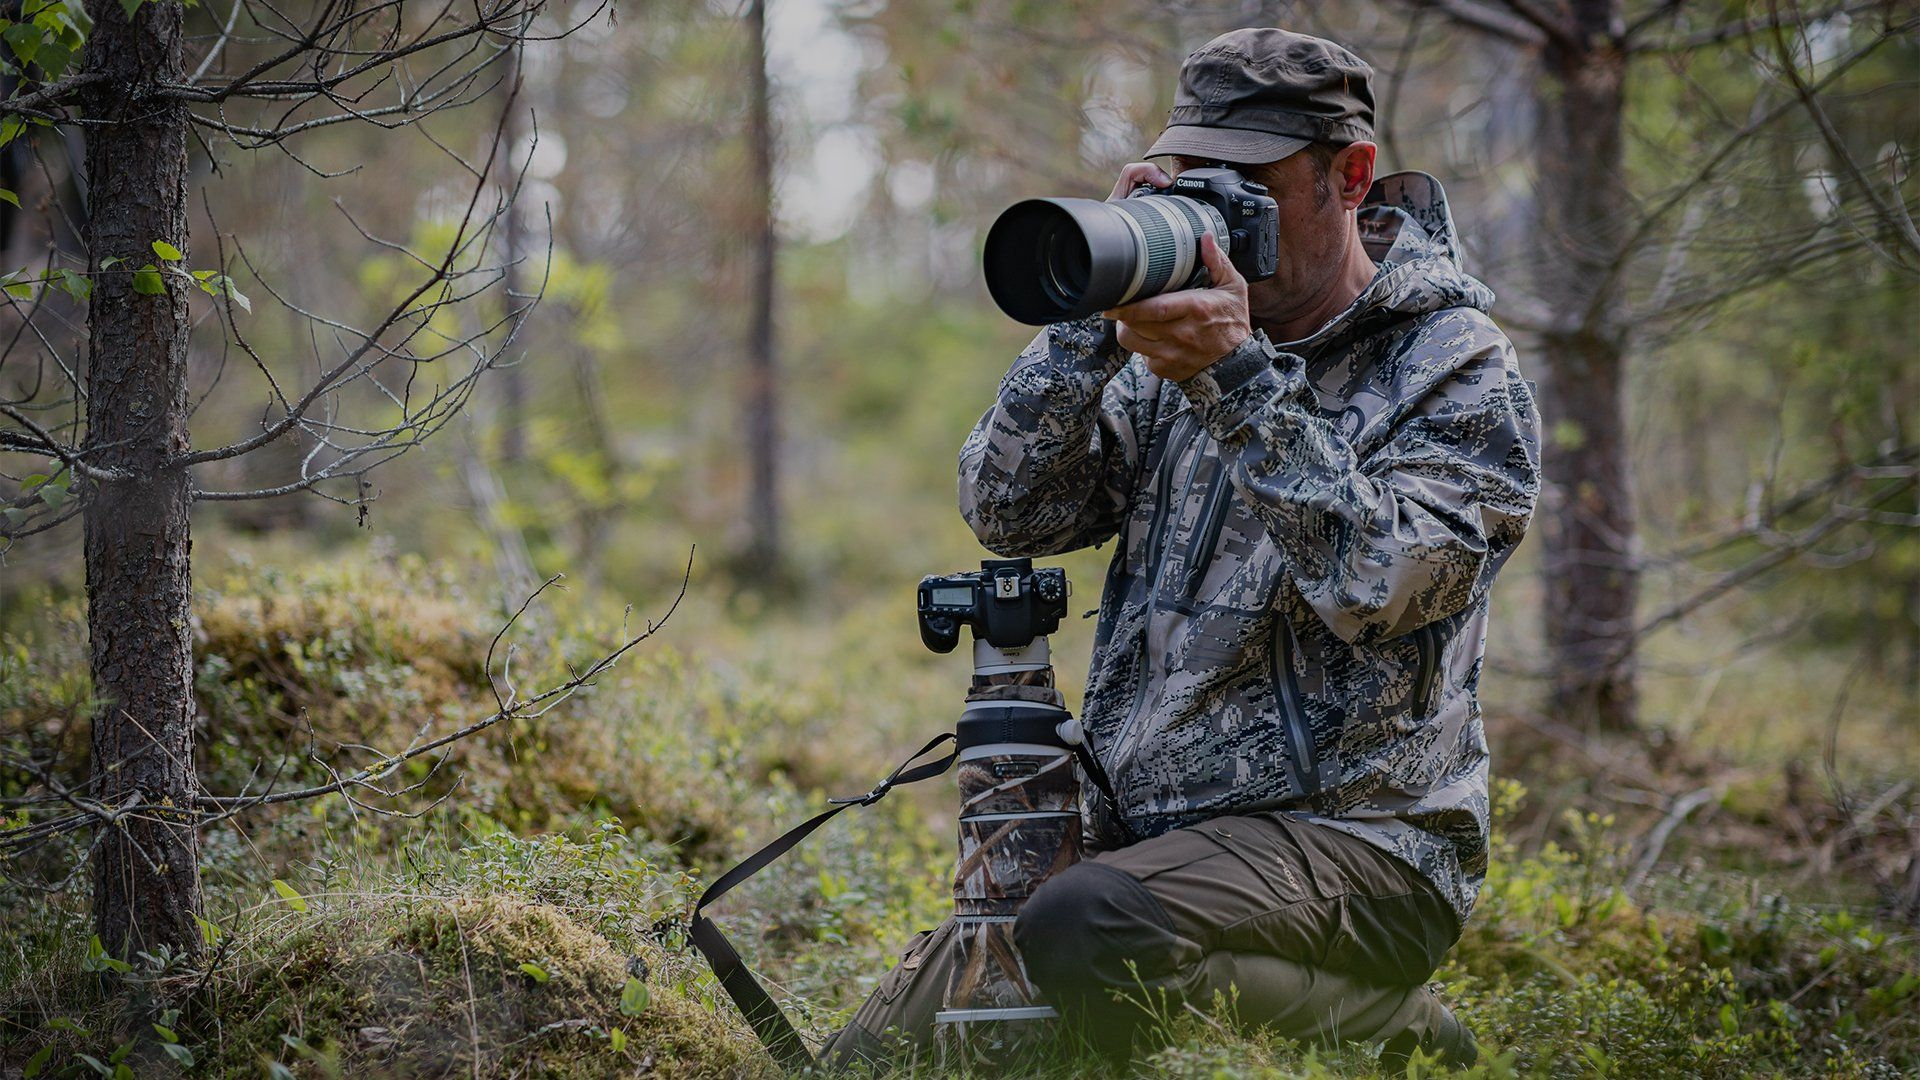 Markus Varesvuo uses the Canon EOS 90D in the woods.